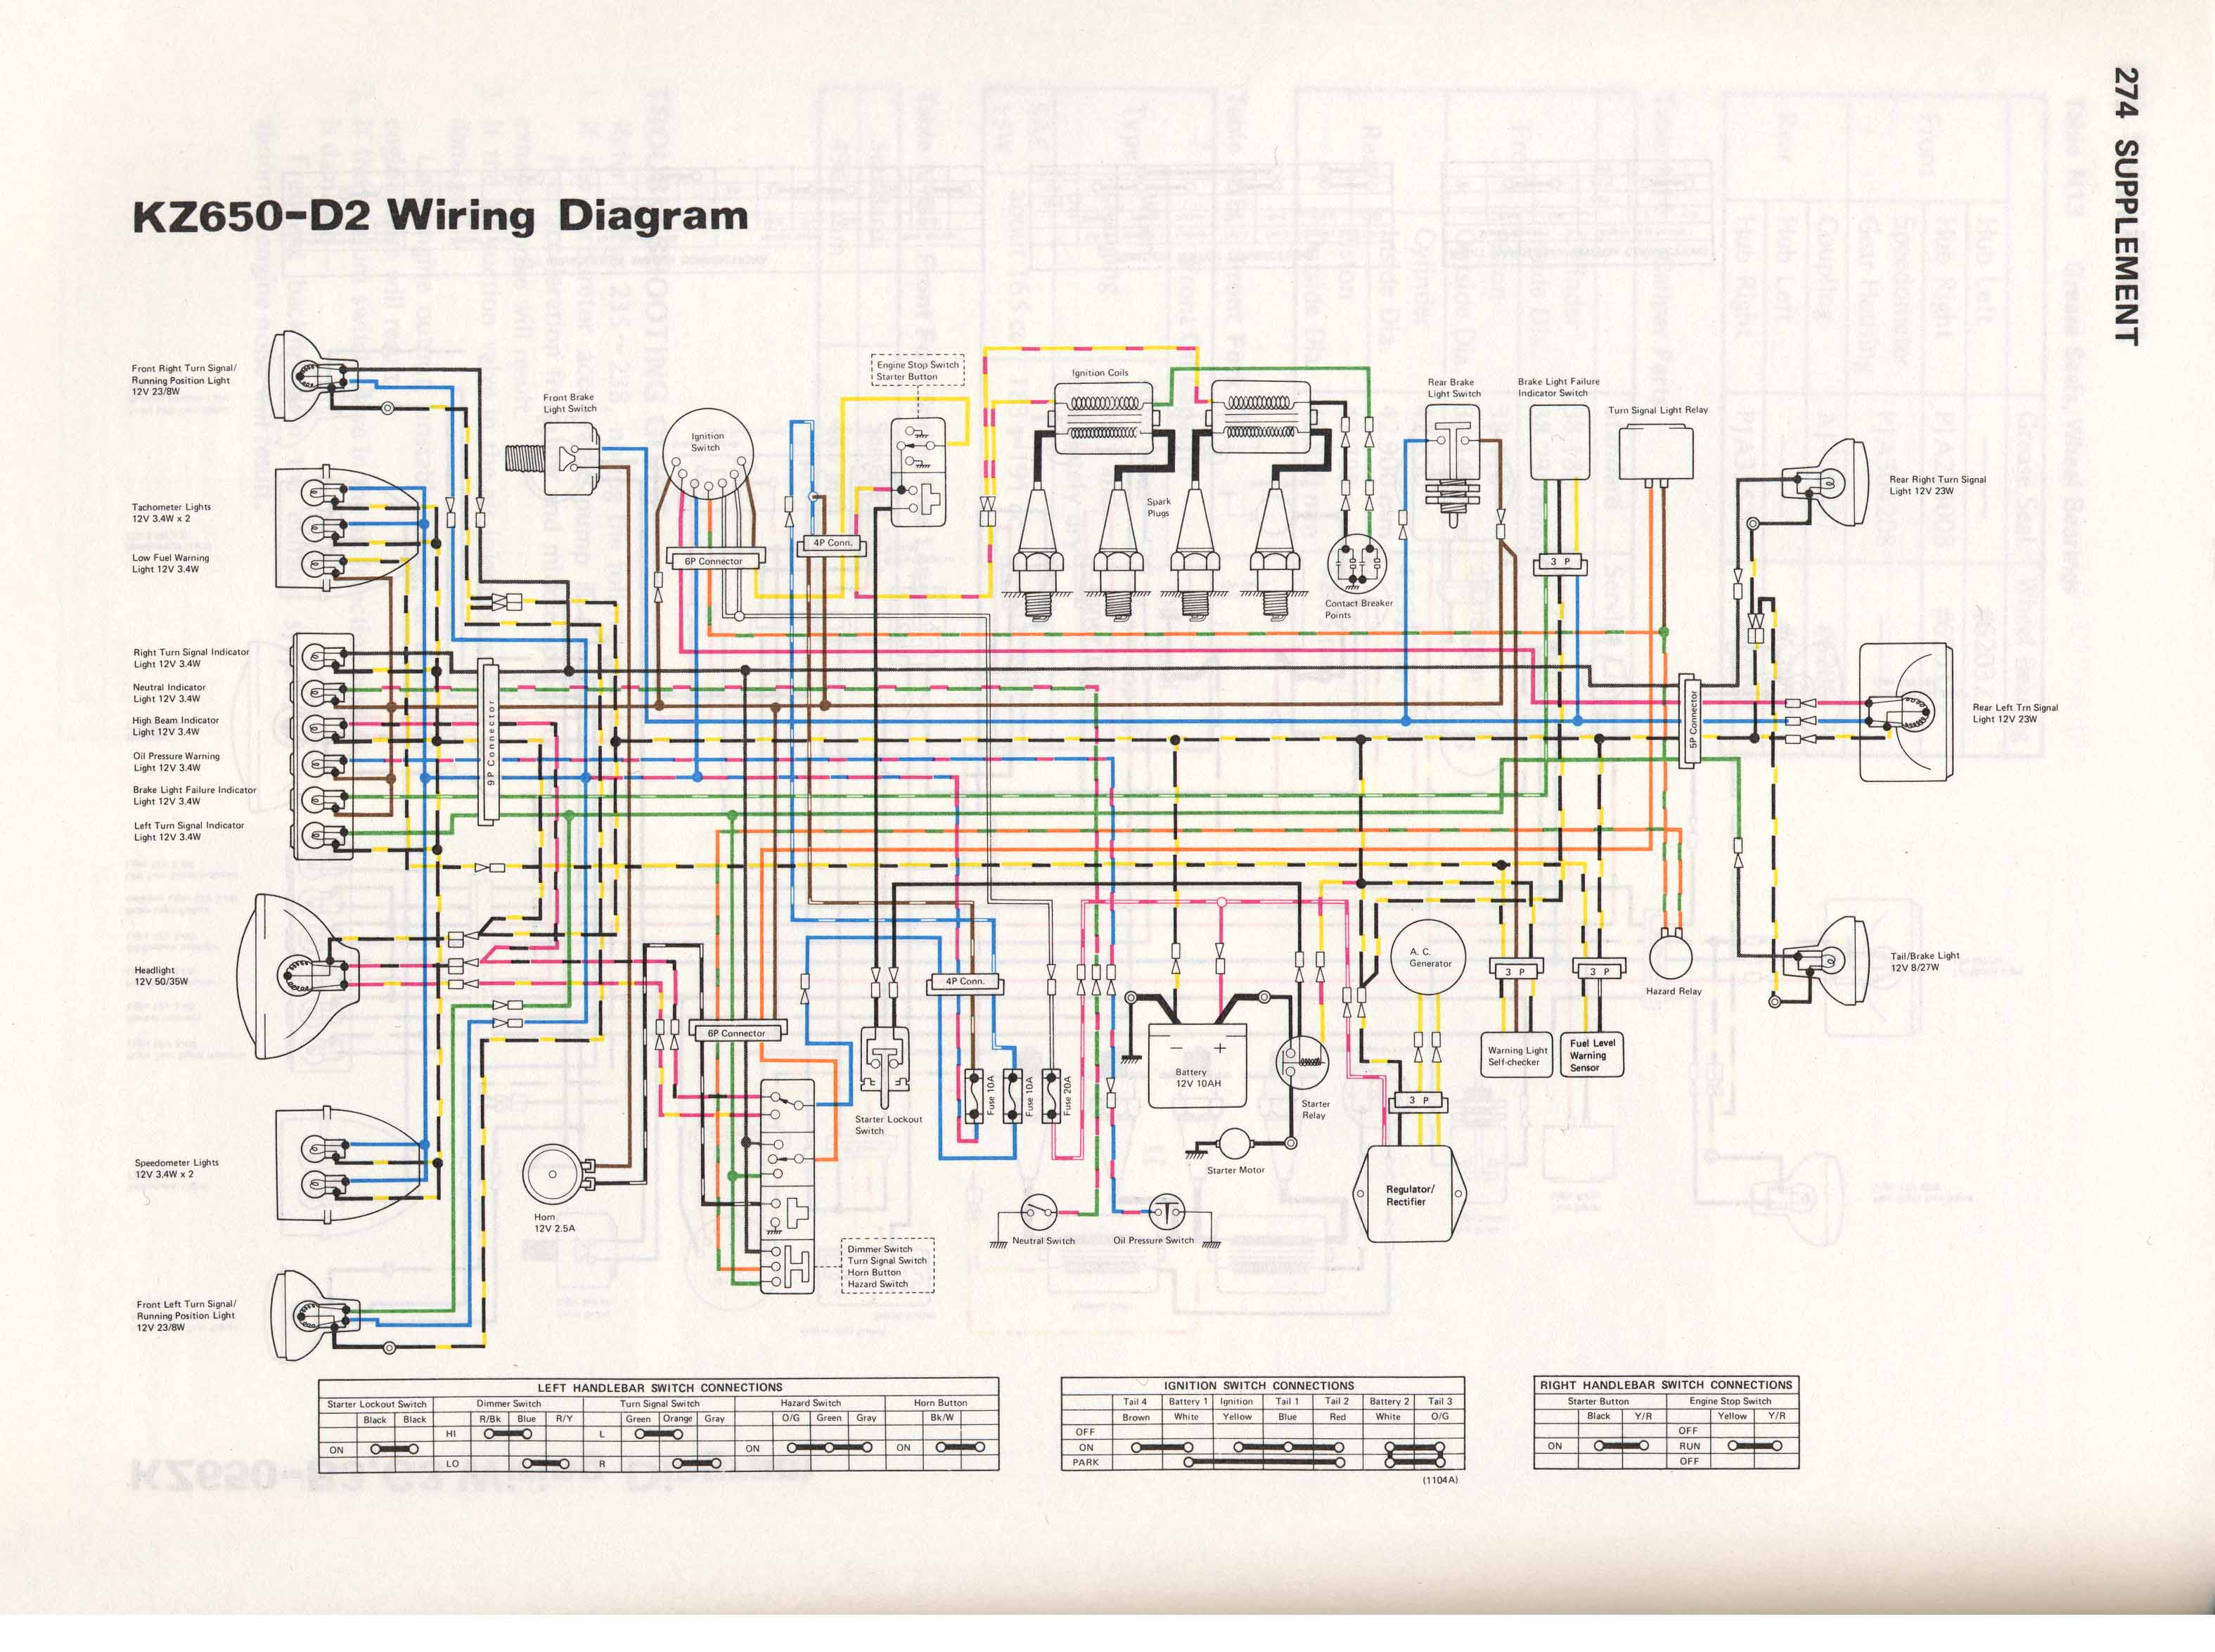 Wiring Diagram Kz750 Ltd - Wiring Diagram Sys